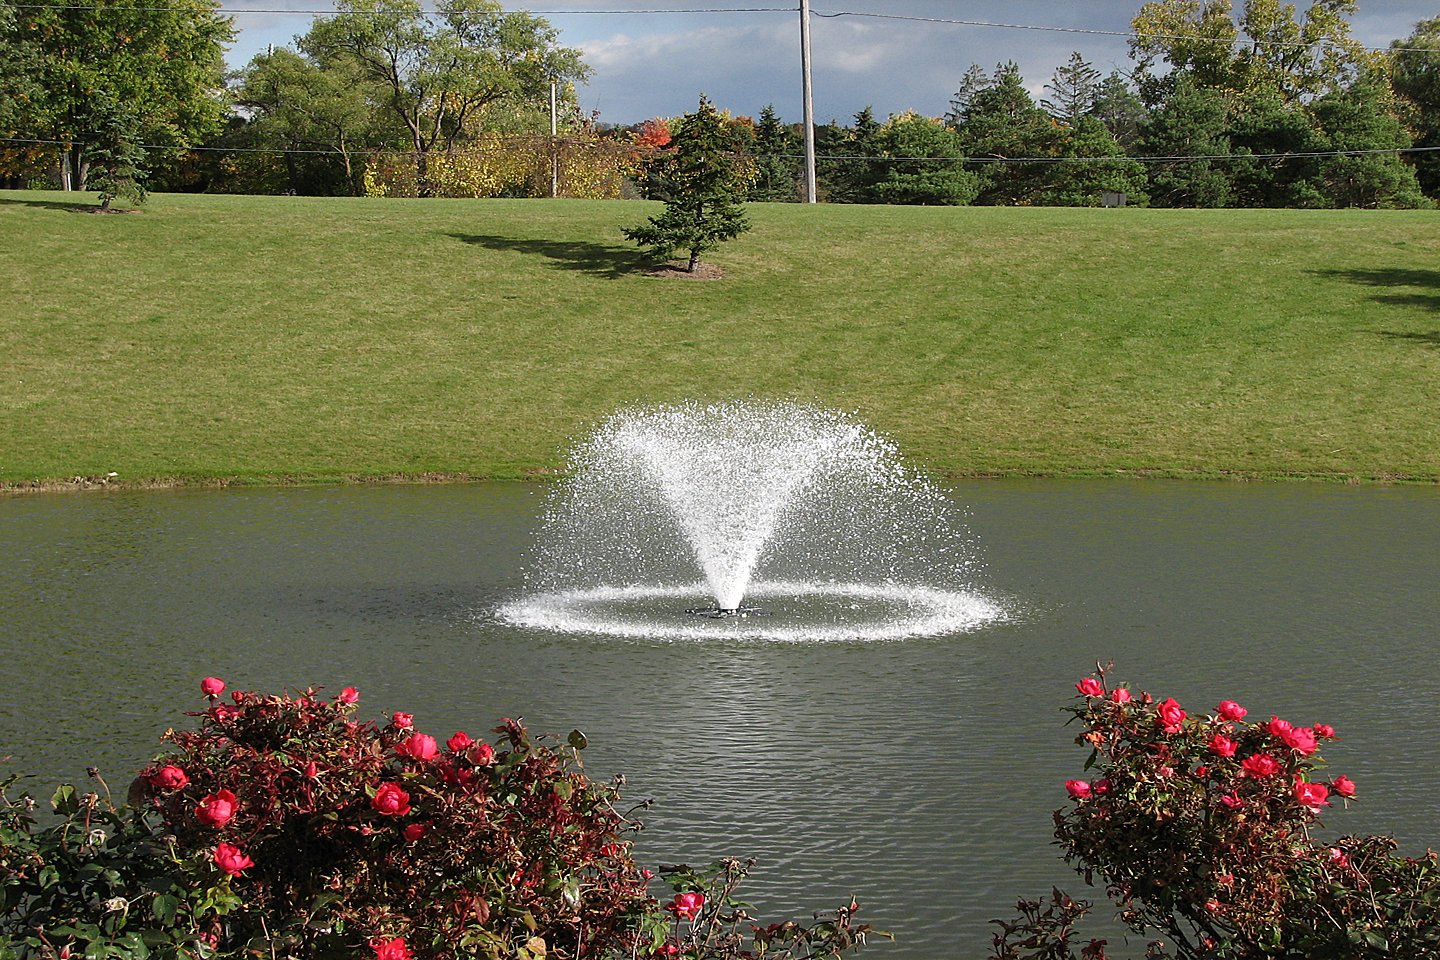 North Star Decorative Pond Aerator at a church